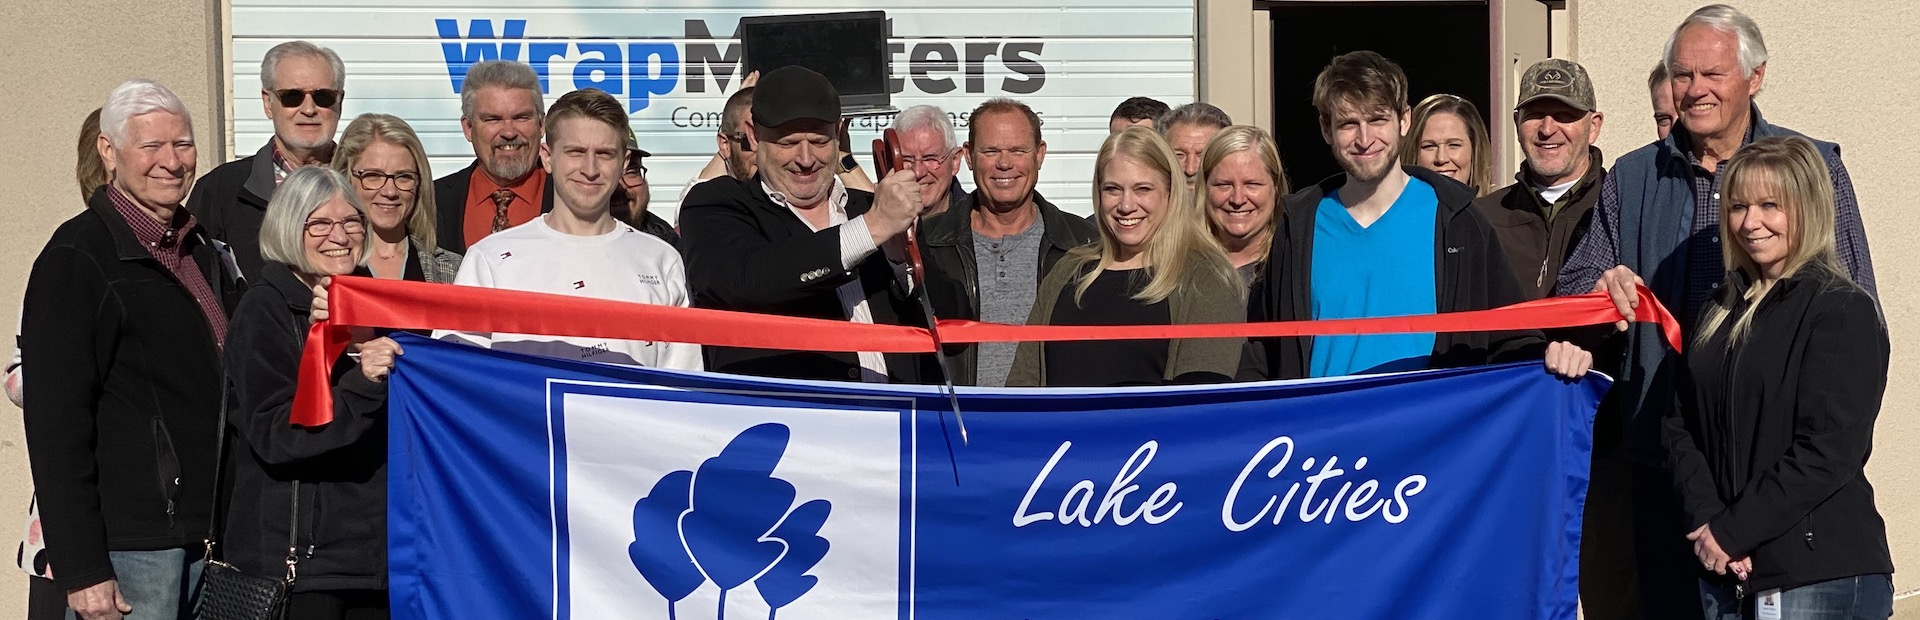 Lake Cities Chamber of Commerce | WrapMasters | Ribbon Cutting